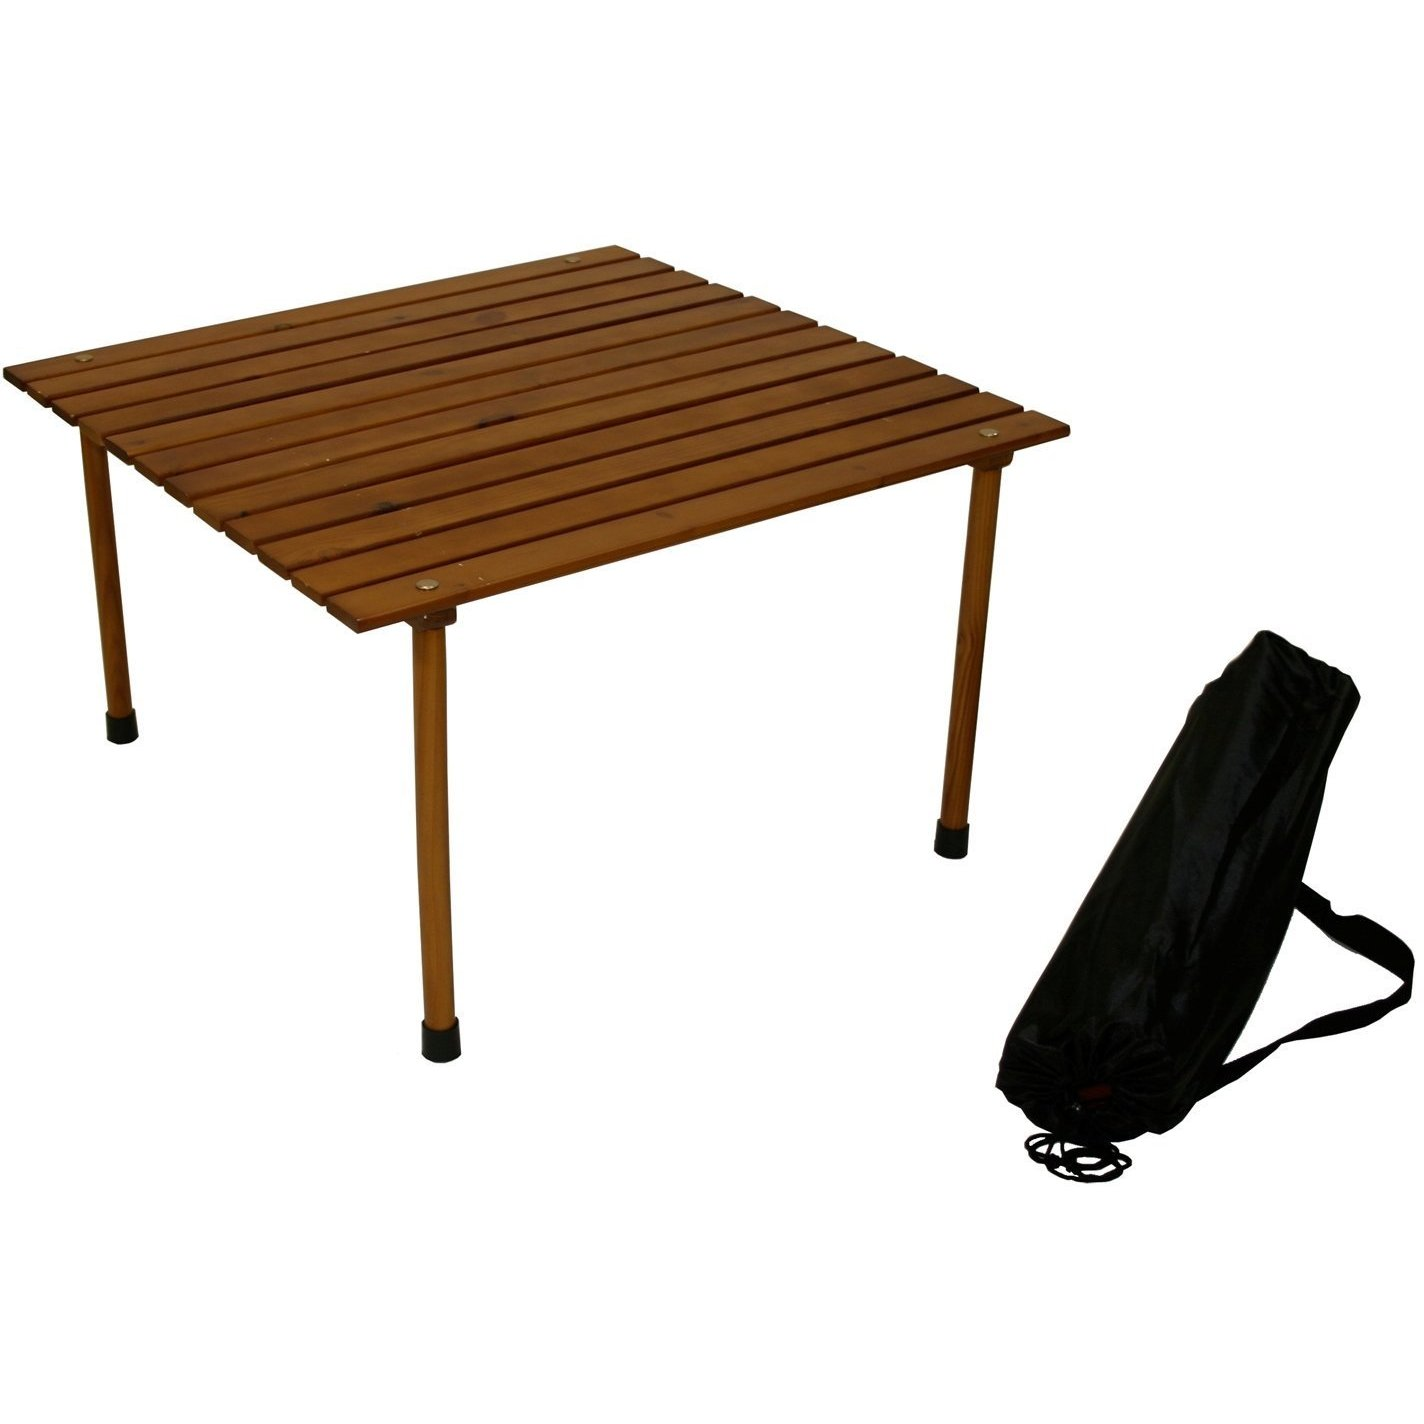 Table in a Bag Wood Portable Table With Bag (Wood Portabl...